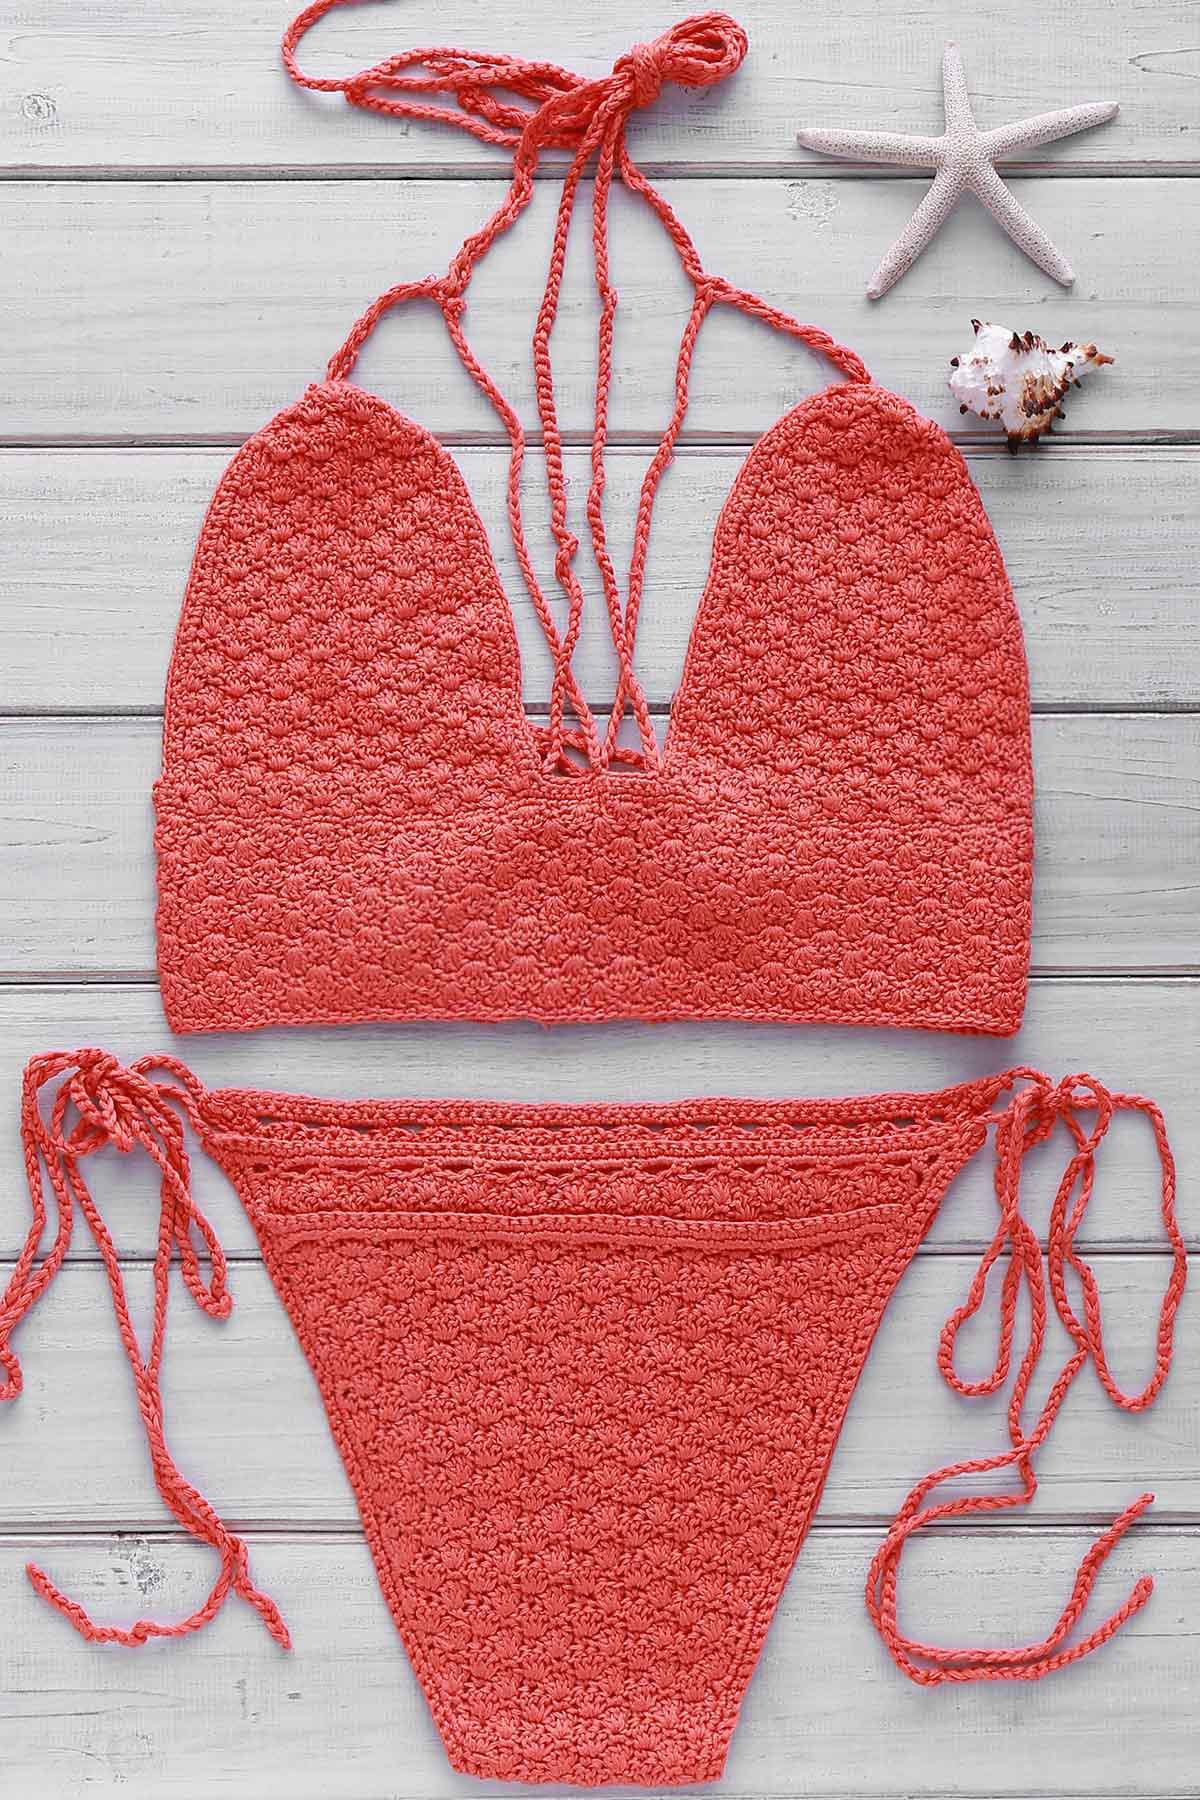 Chic Women's Halter Self-Tie Crochet Bikini Set